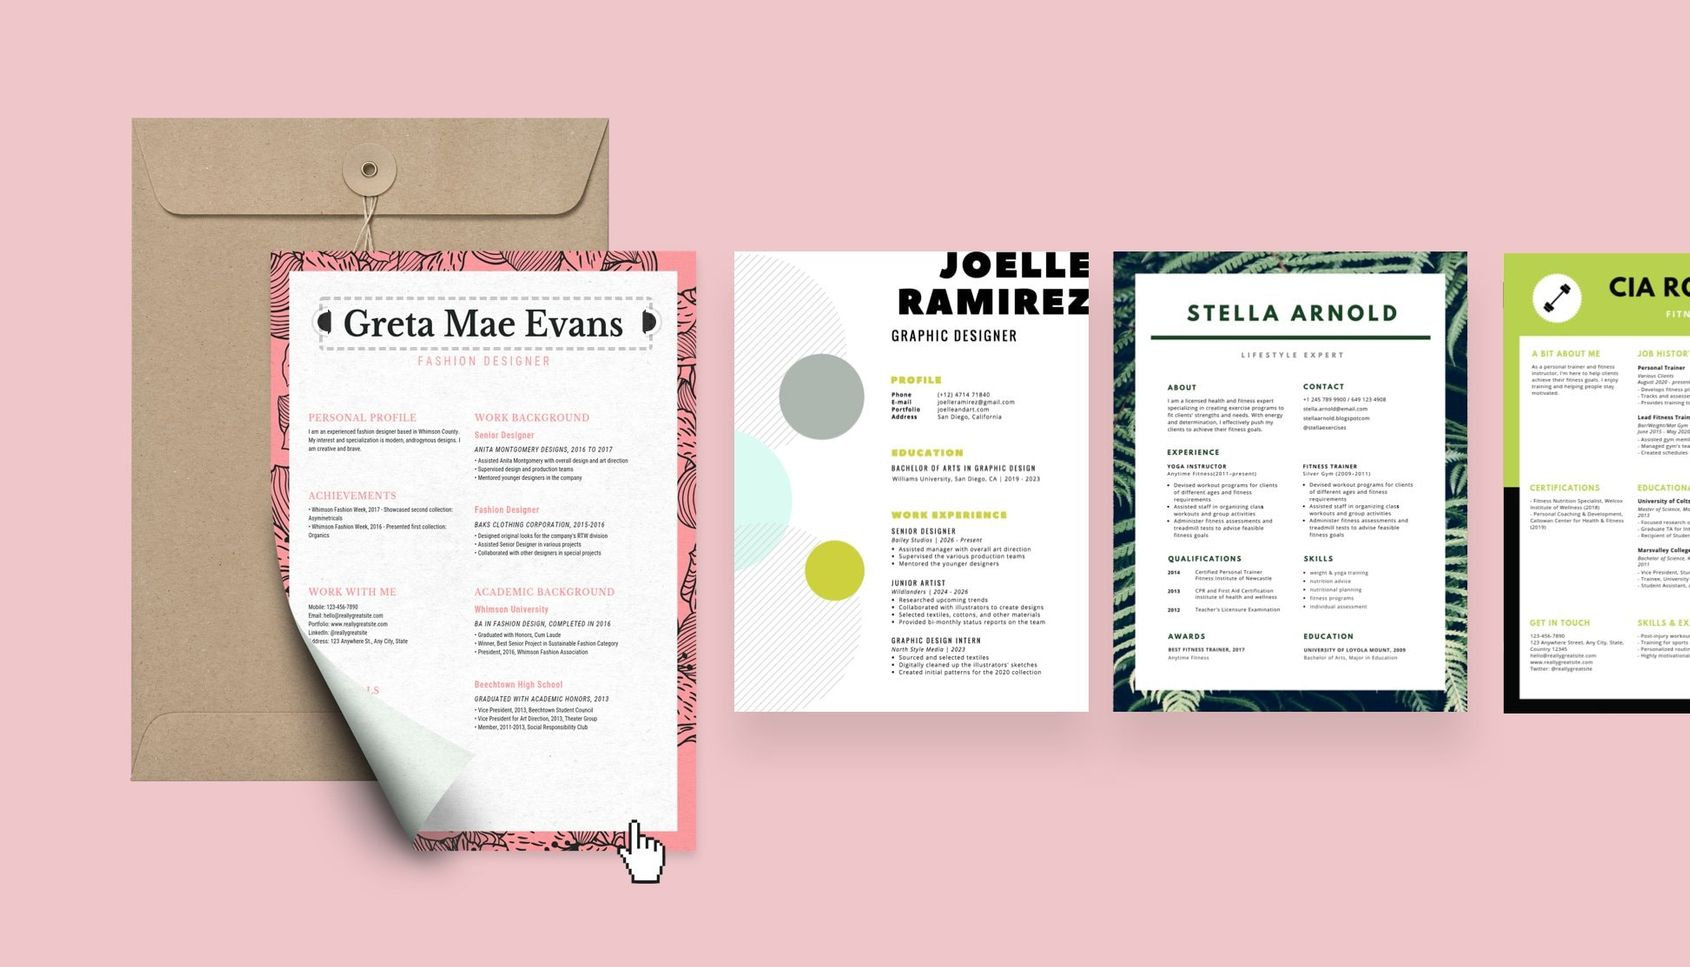 free resume builder design custom in canva fast maker dsp writing services local instant Resume Fast Free Resume Maker